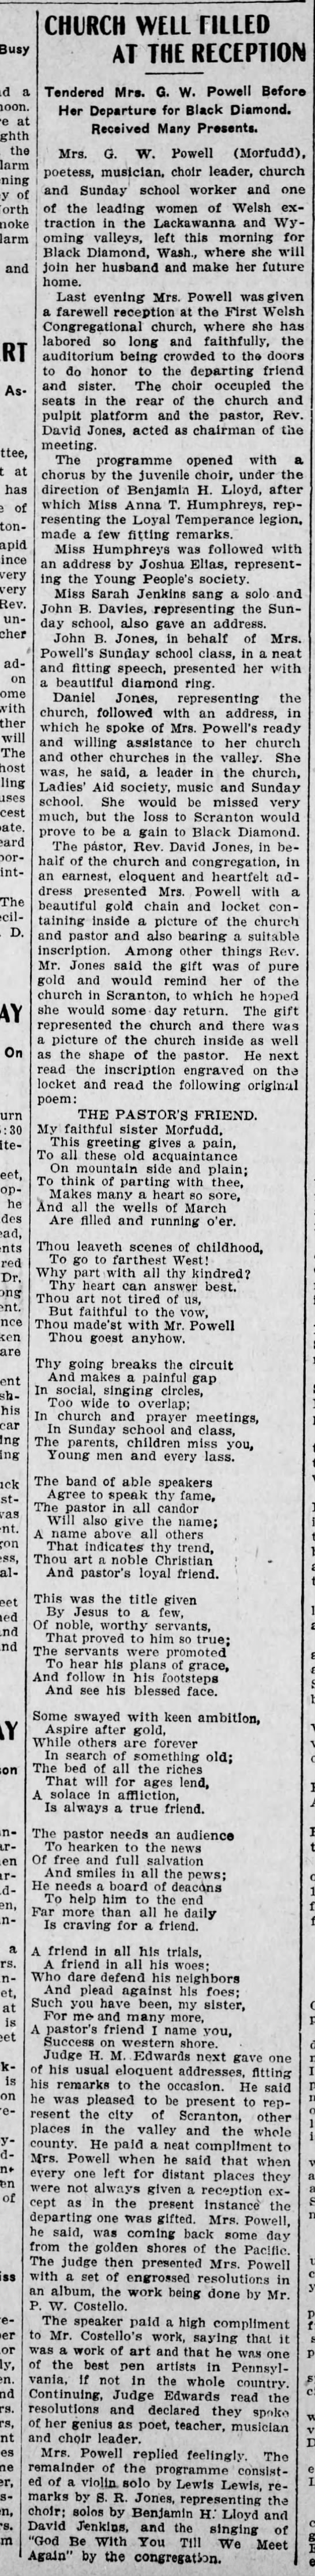 PWC Resolutions engrossed for Mrs Powell Presented by Judge Scr Rep Aug 27 1907 pg 6 -